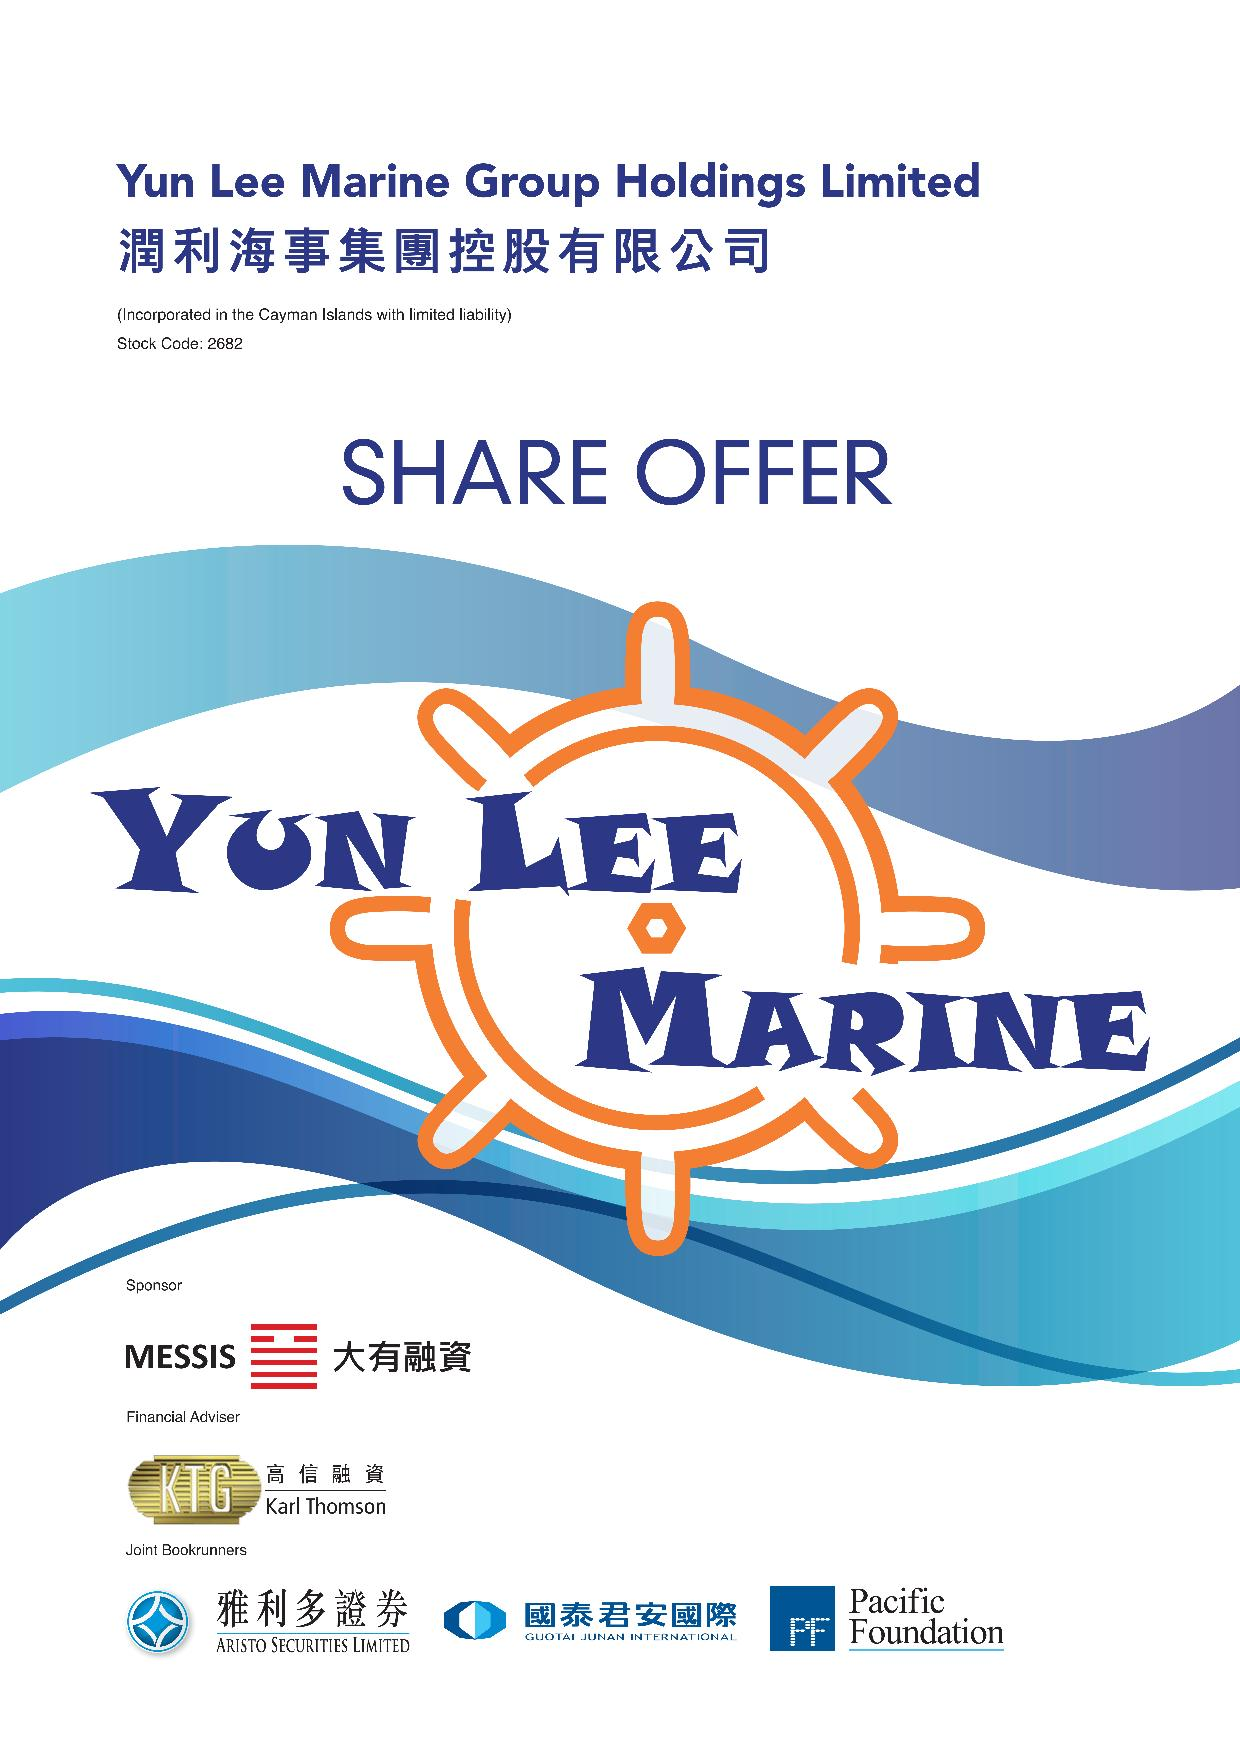 Yun Lee Marine Group Holdings Limited